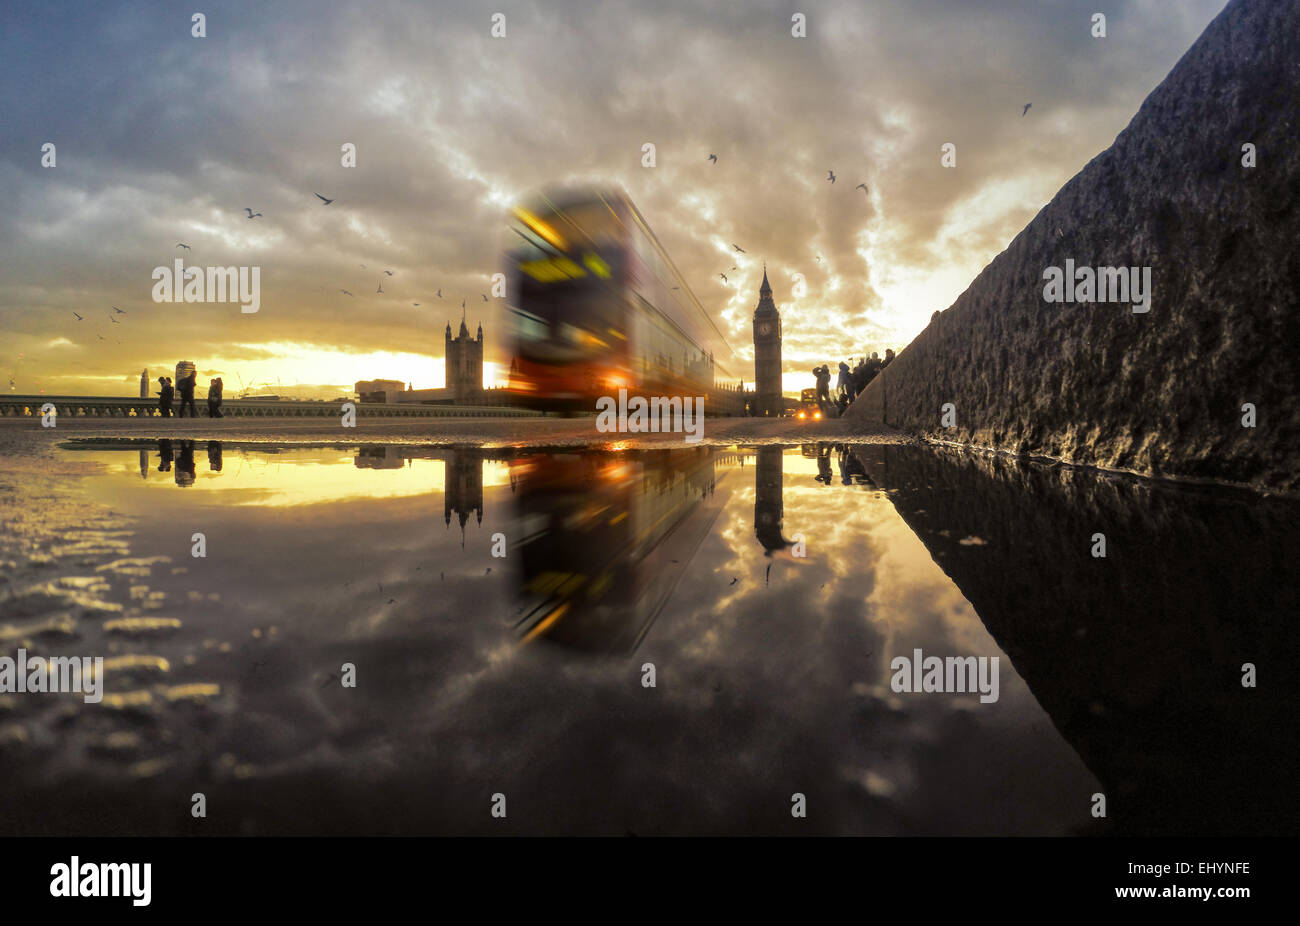 Westminster Bridge bei Sonnenuntergang, England, UK Stockbild